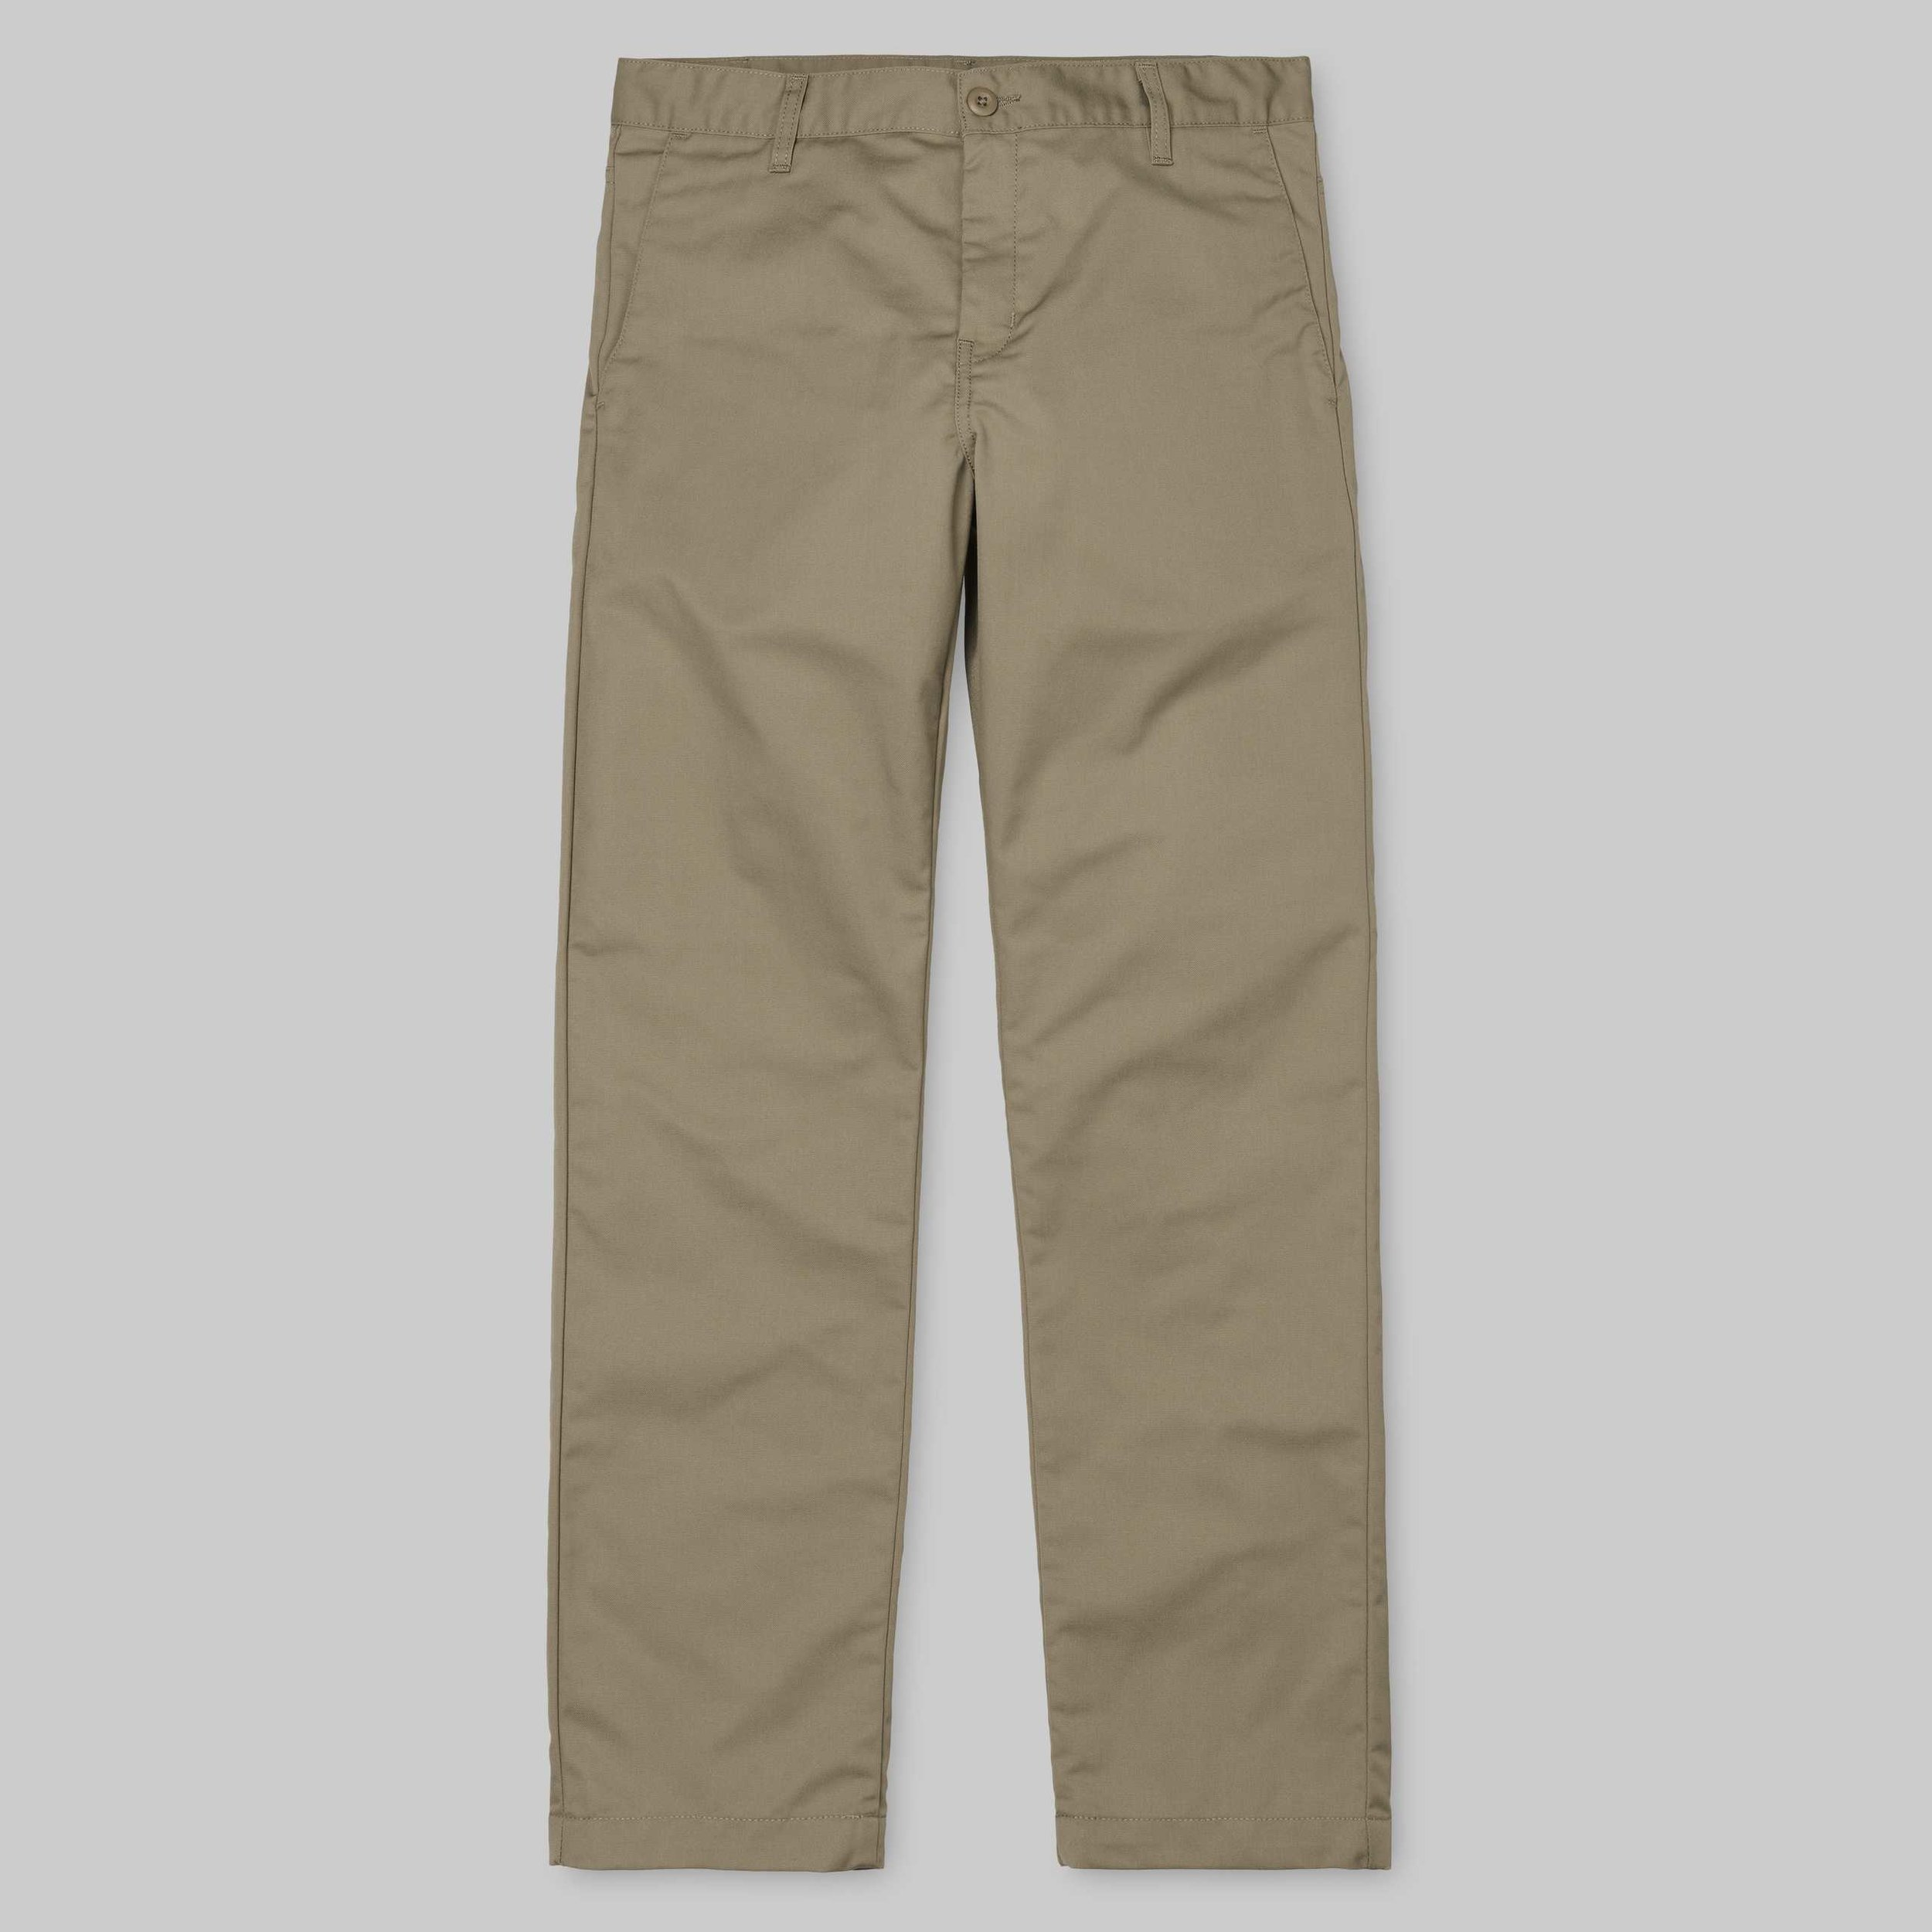 CARHARTT – STATION PANT – LEATHER RINSED SLIDE Prix 79.00€